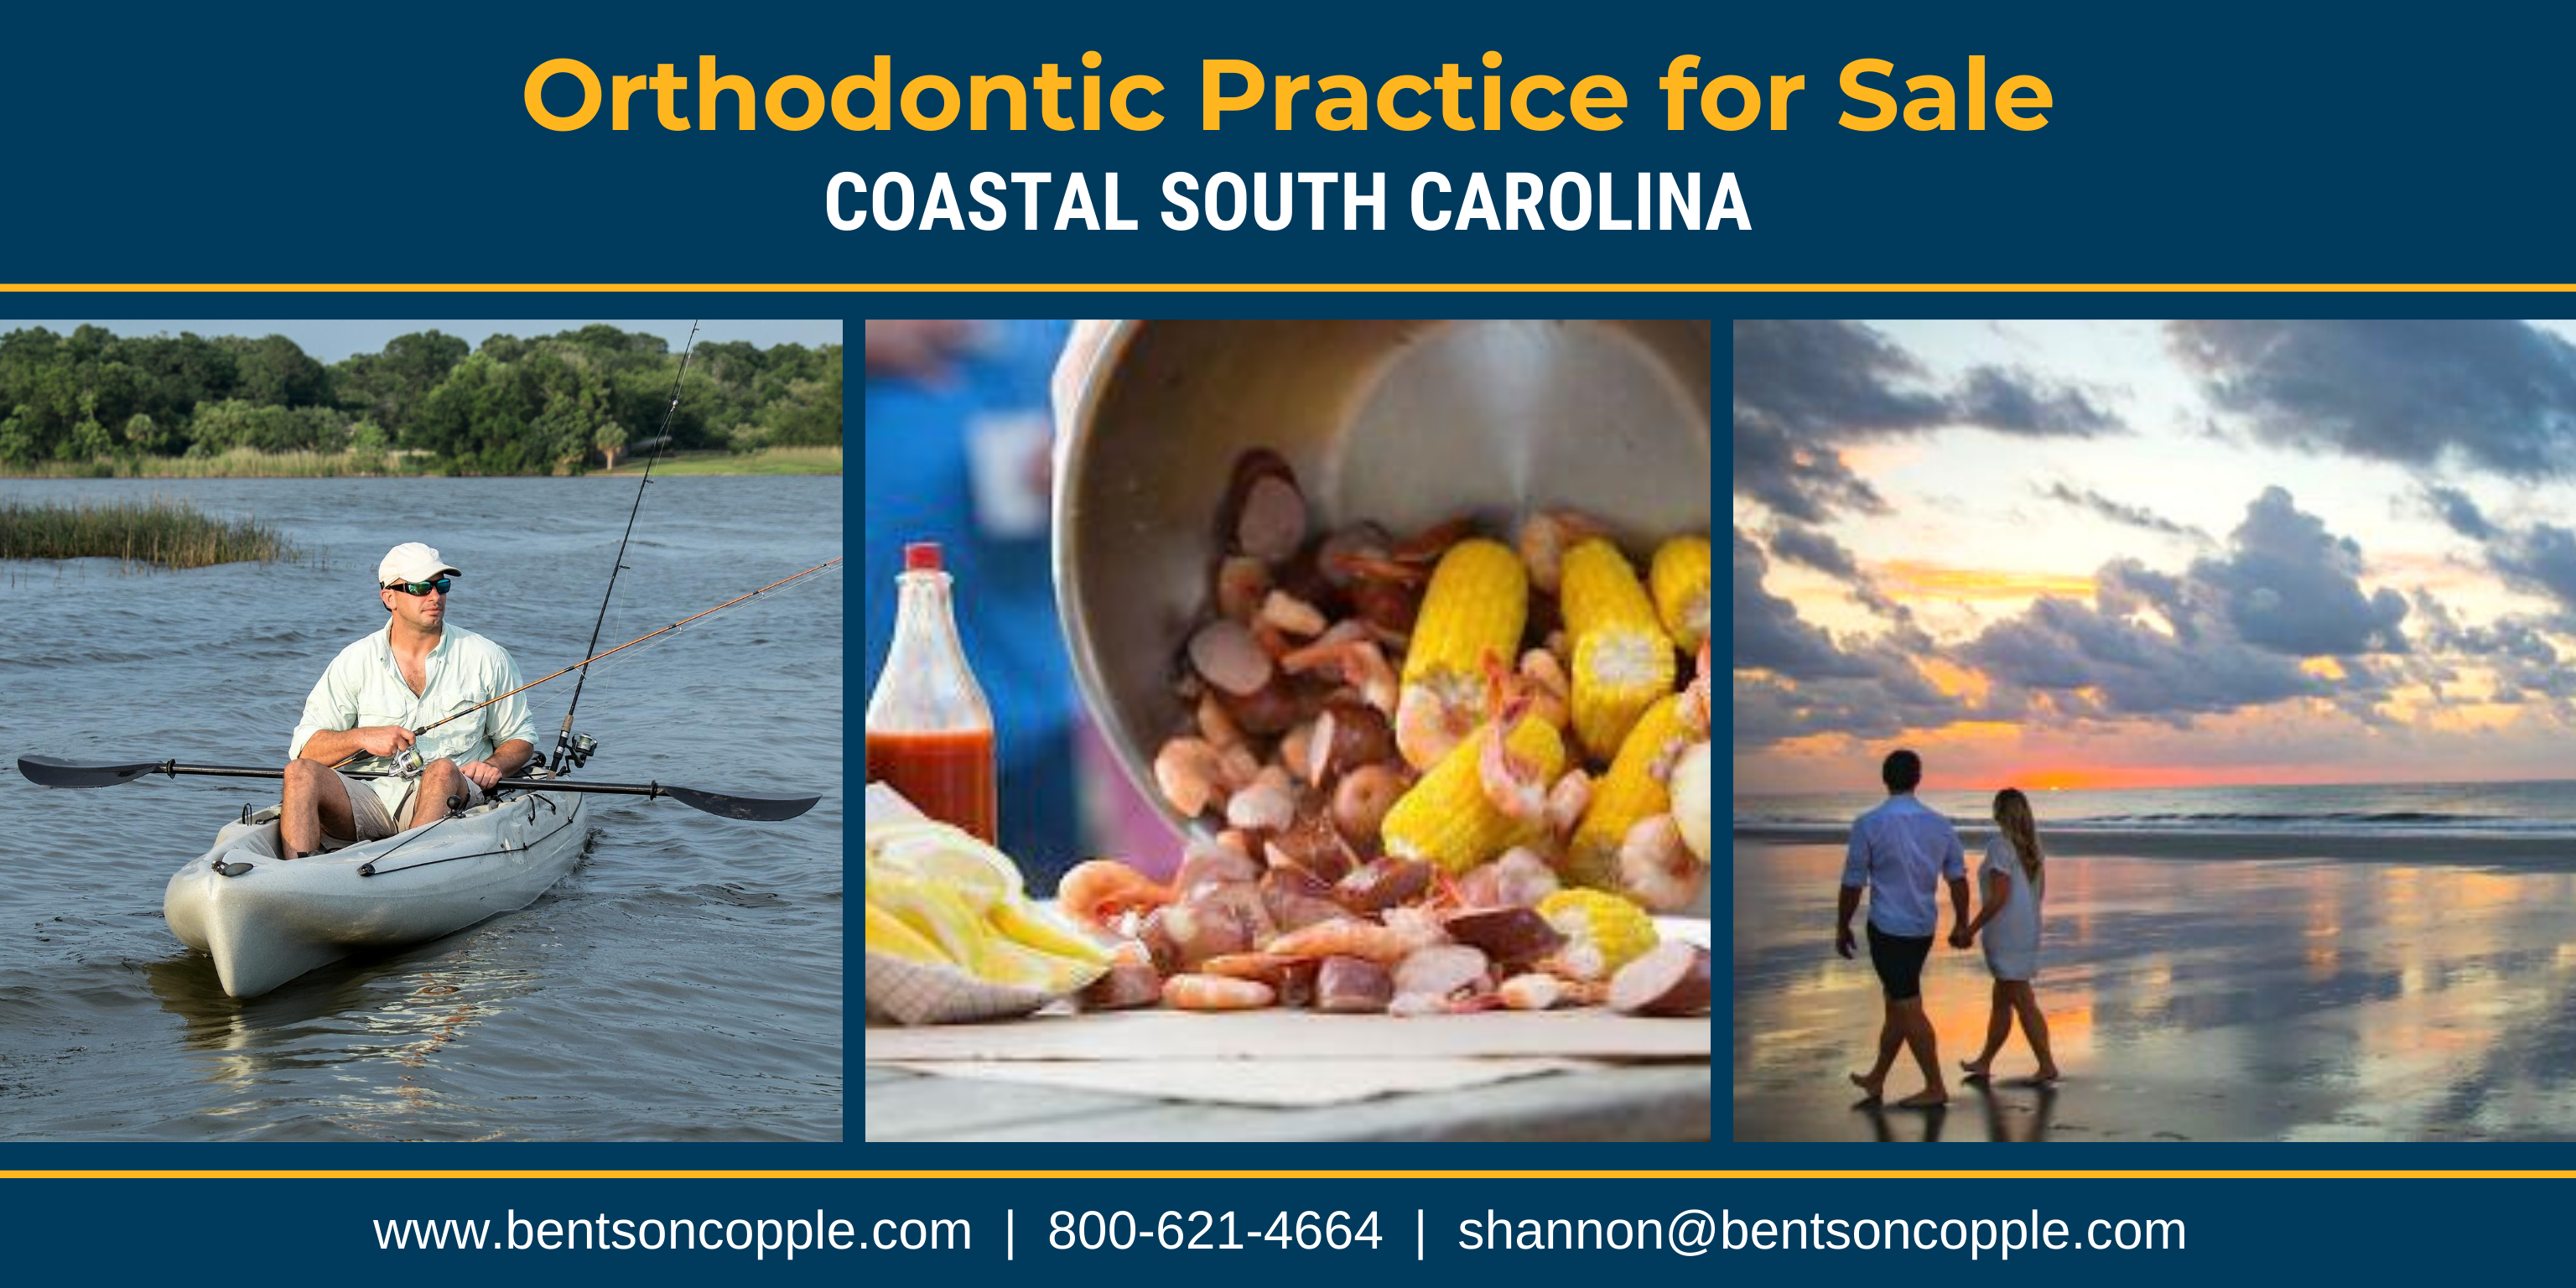 Orthodontic Practice for Sale - Coastal South Carolina